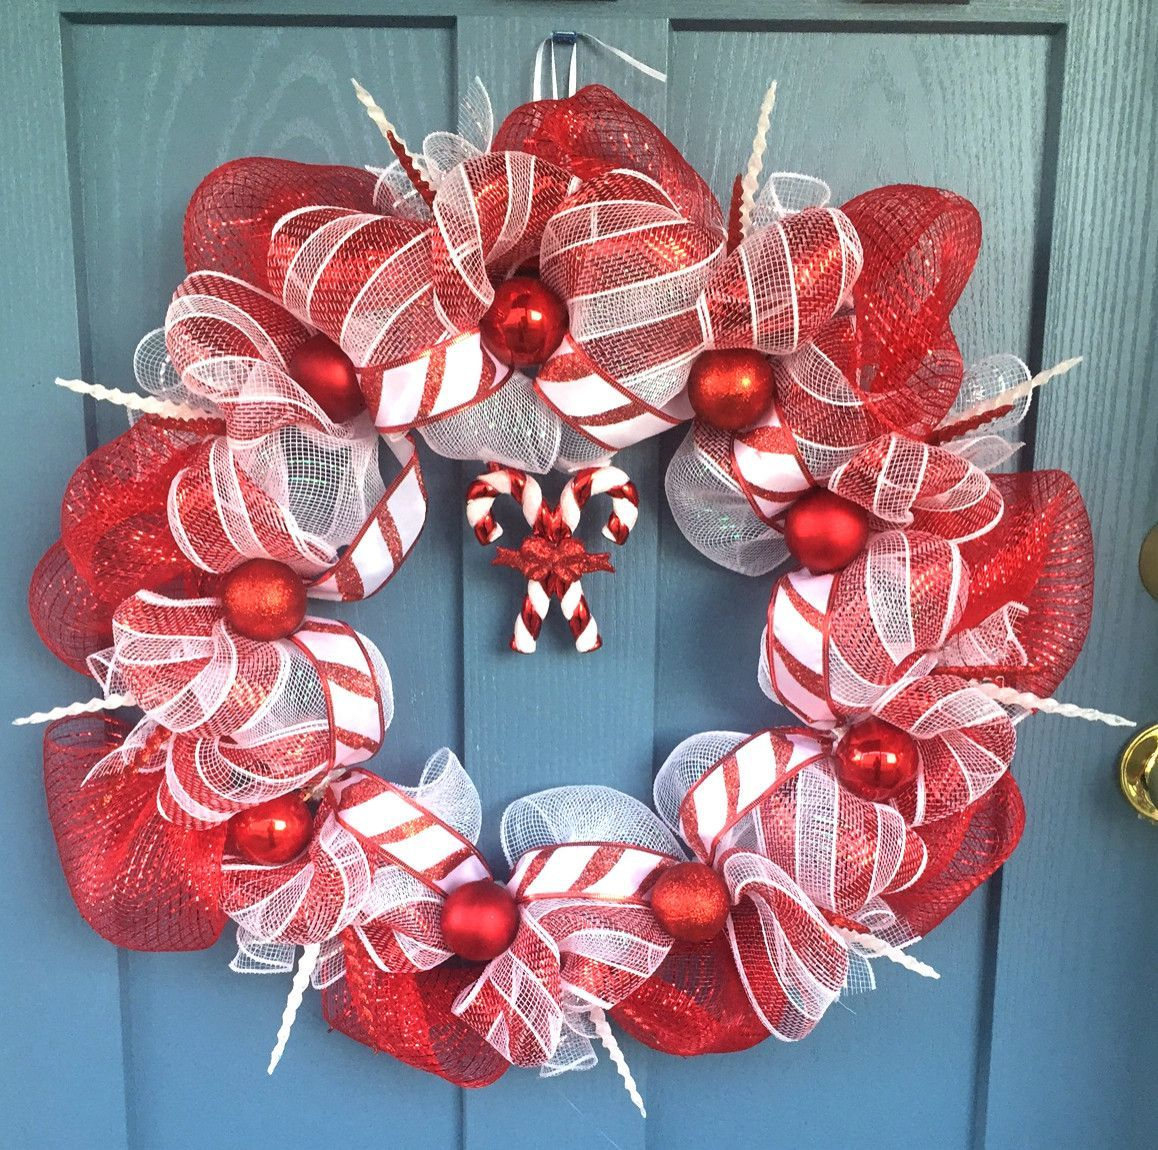 - Wire wreath frame covered with red and white mesh ...